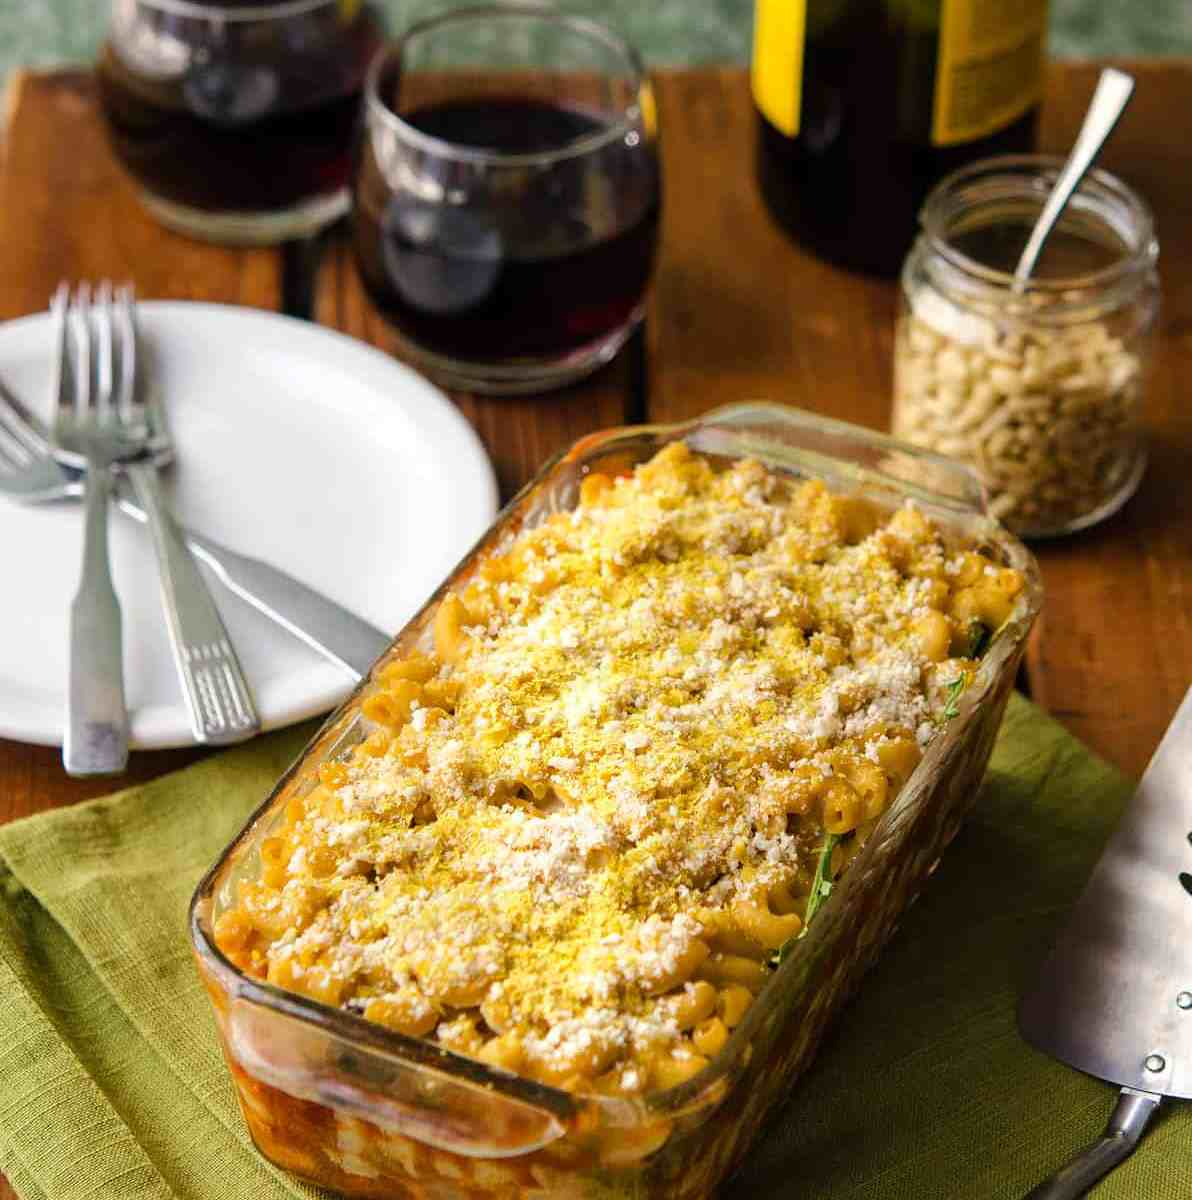 Macaroni Lasagna with White Bean Cheese Sauce